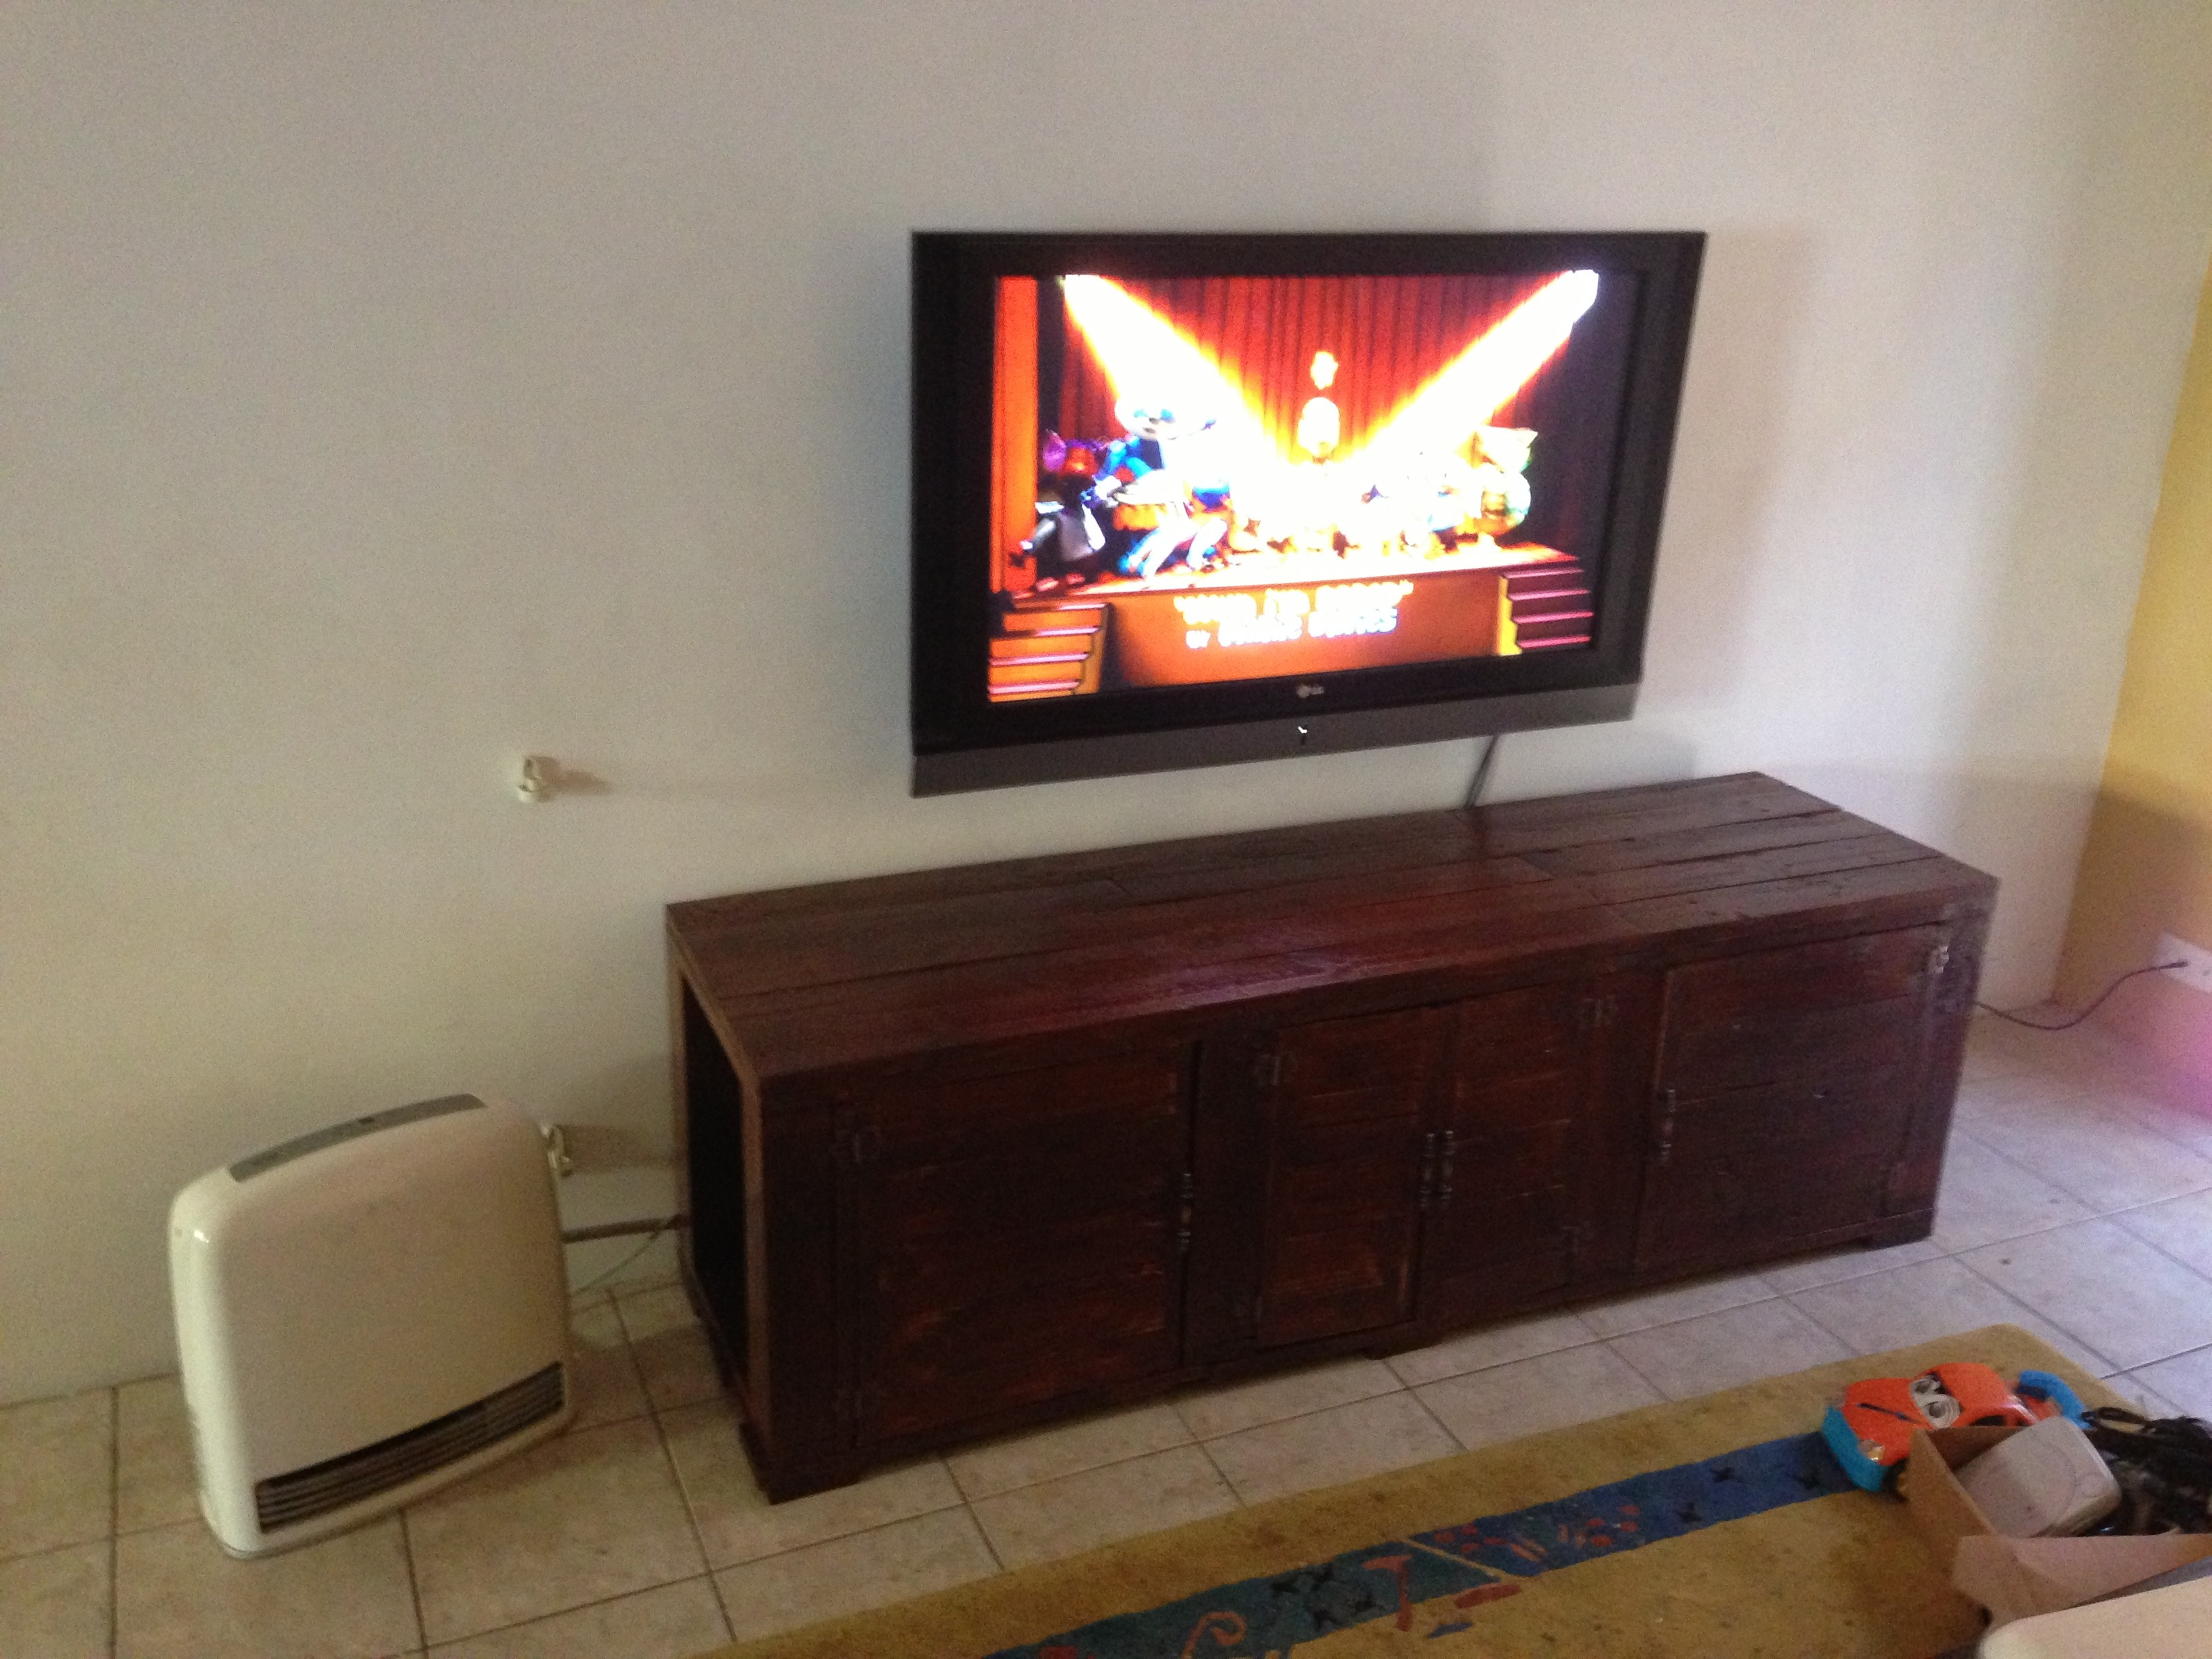 Pallet Tv Unit: 10 Steps (with Pictures)